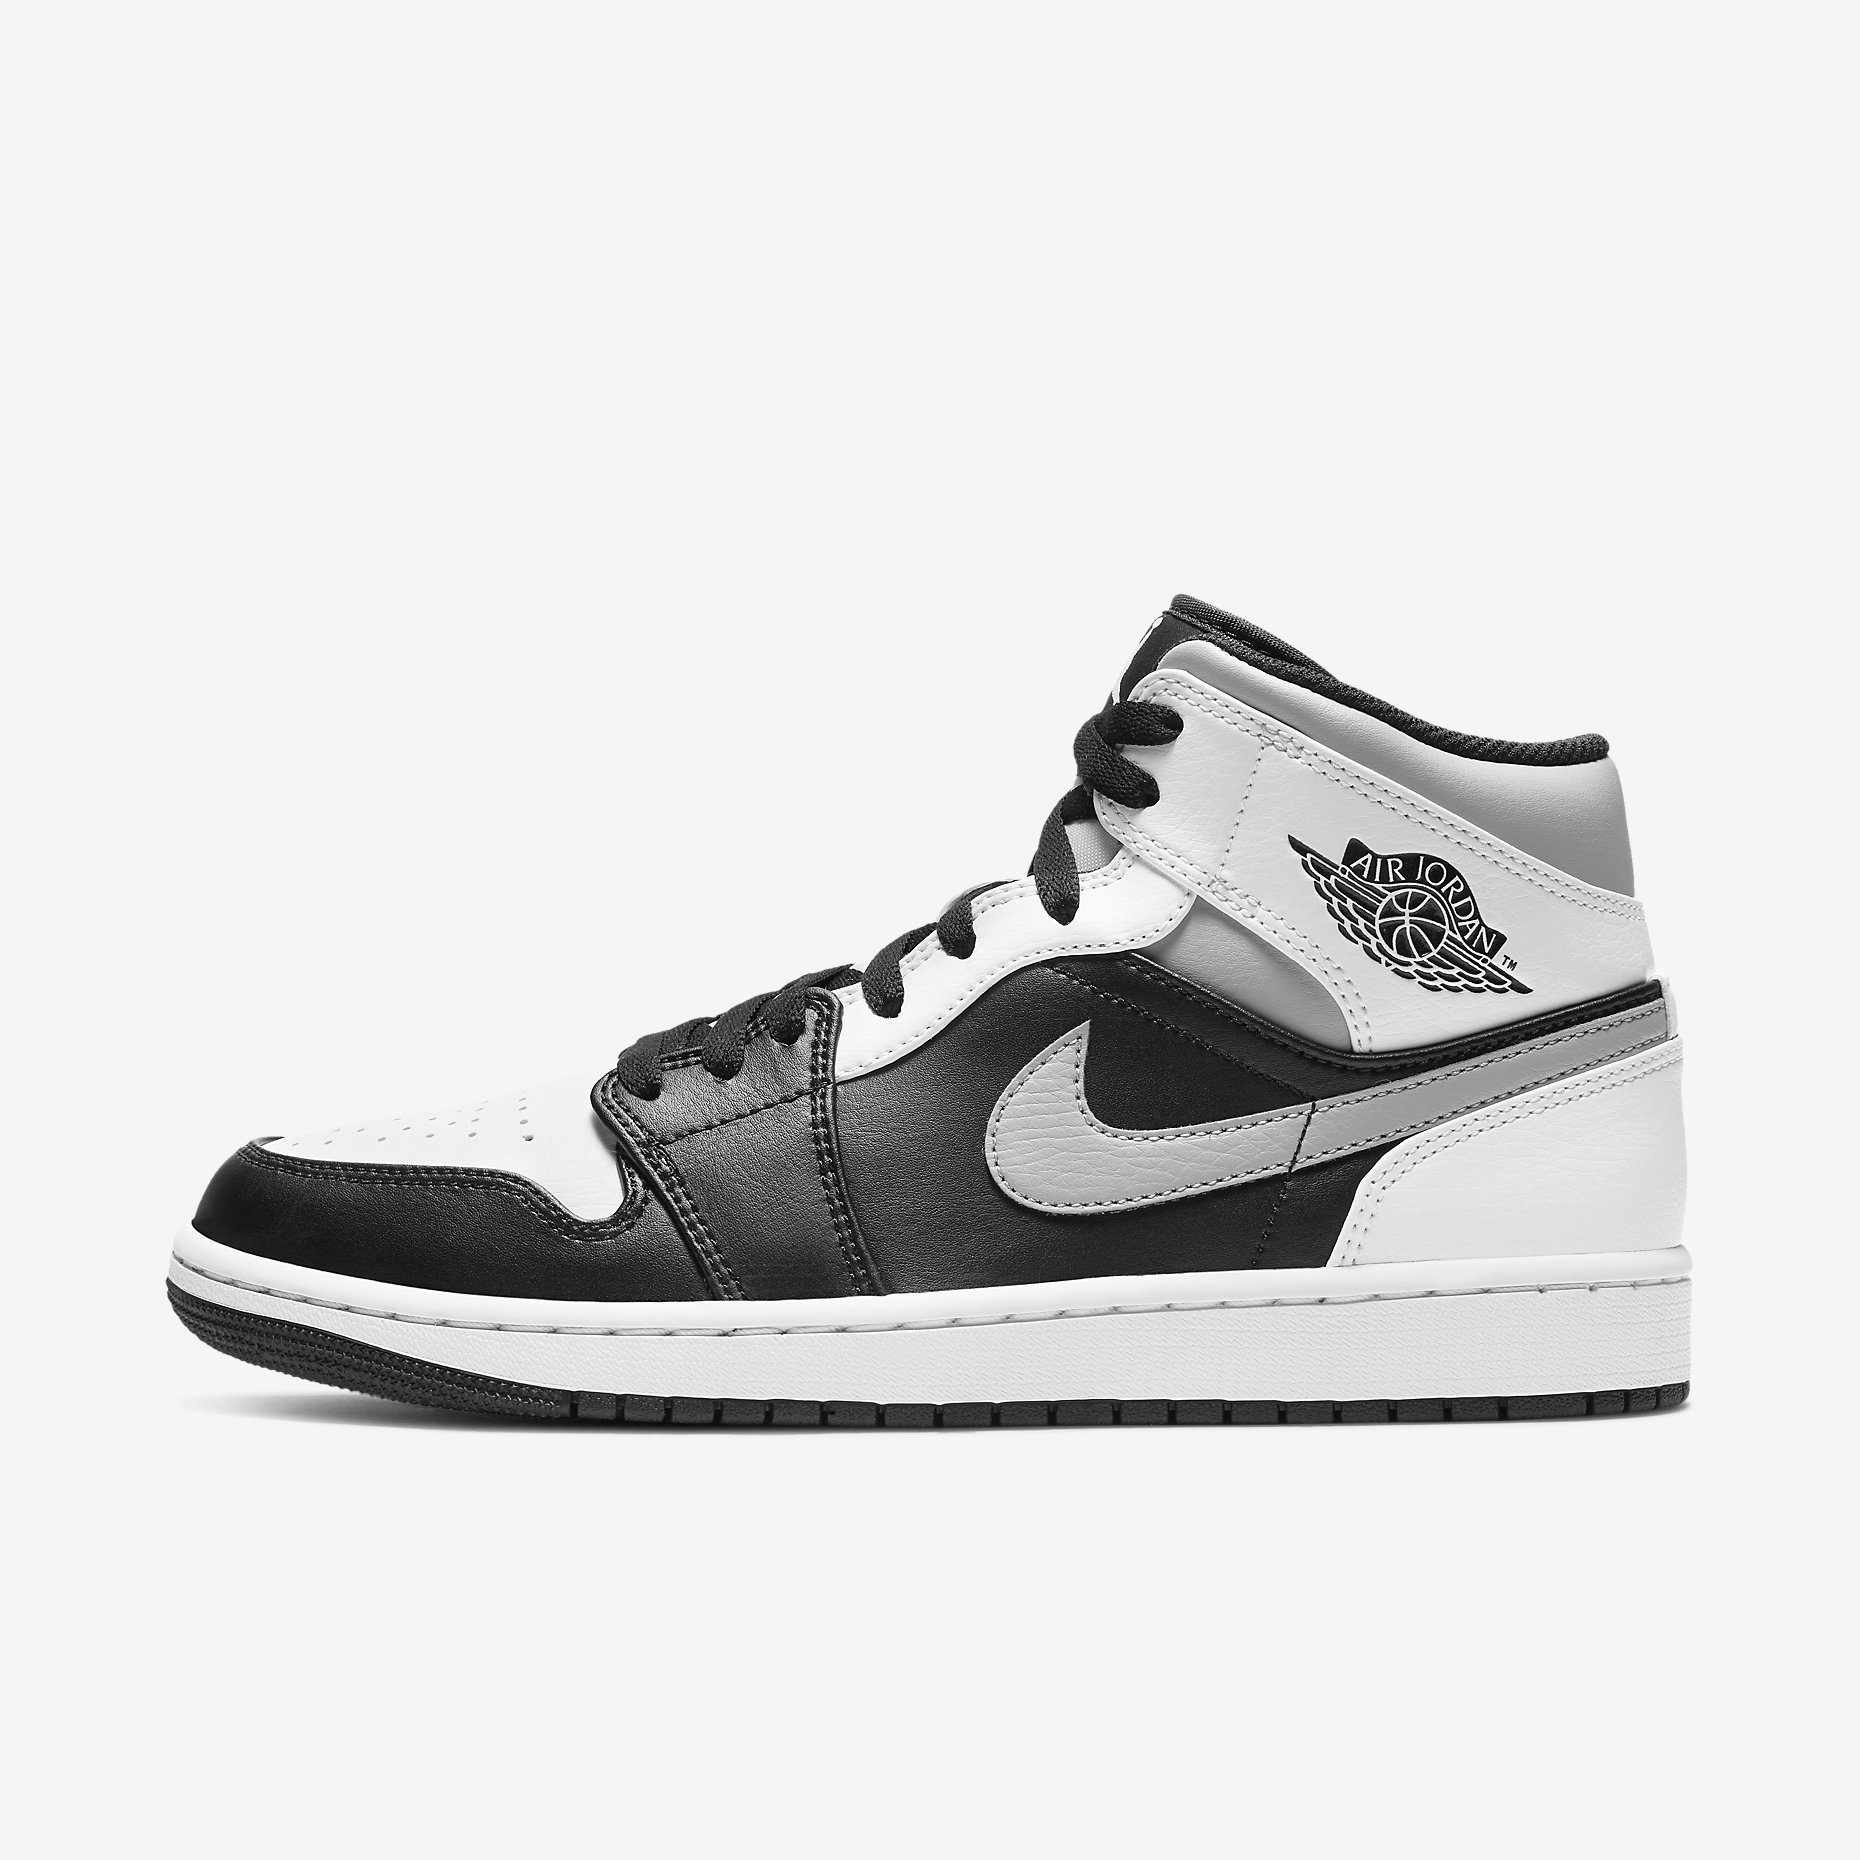 Air Jordan 1 Mid 'White Shadow'}